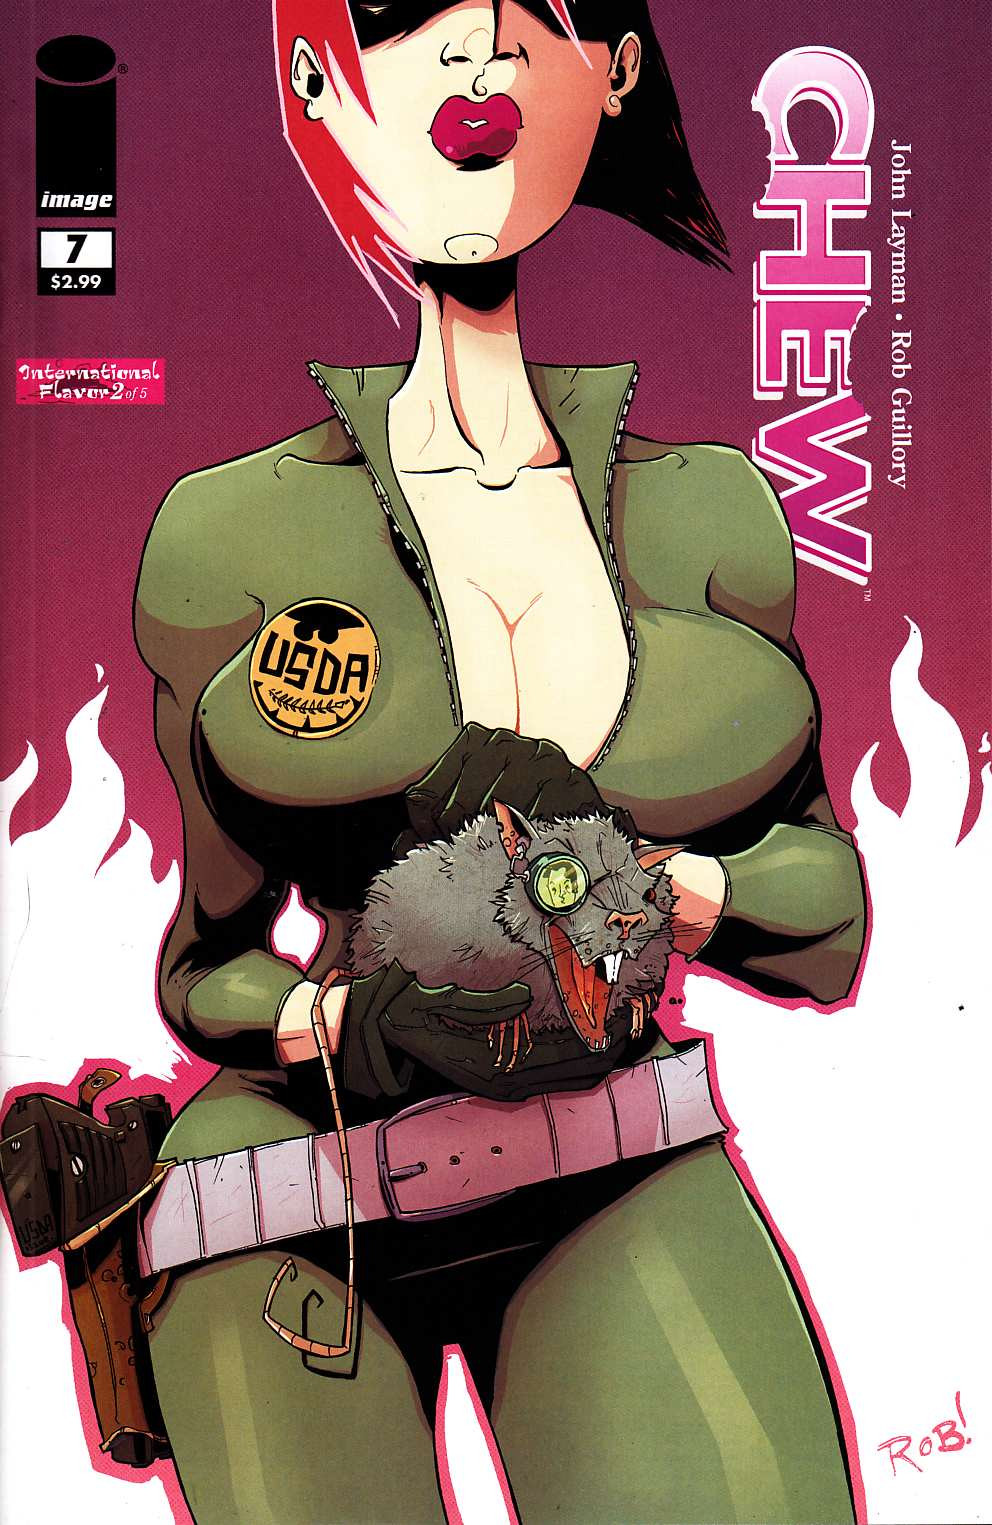 Chew #7 [Image Comic]